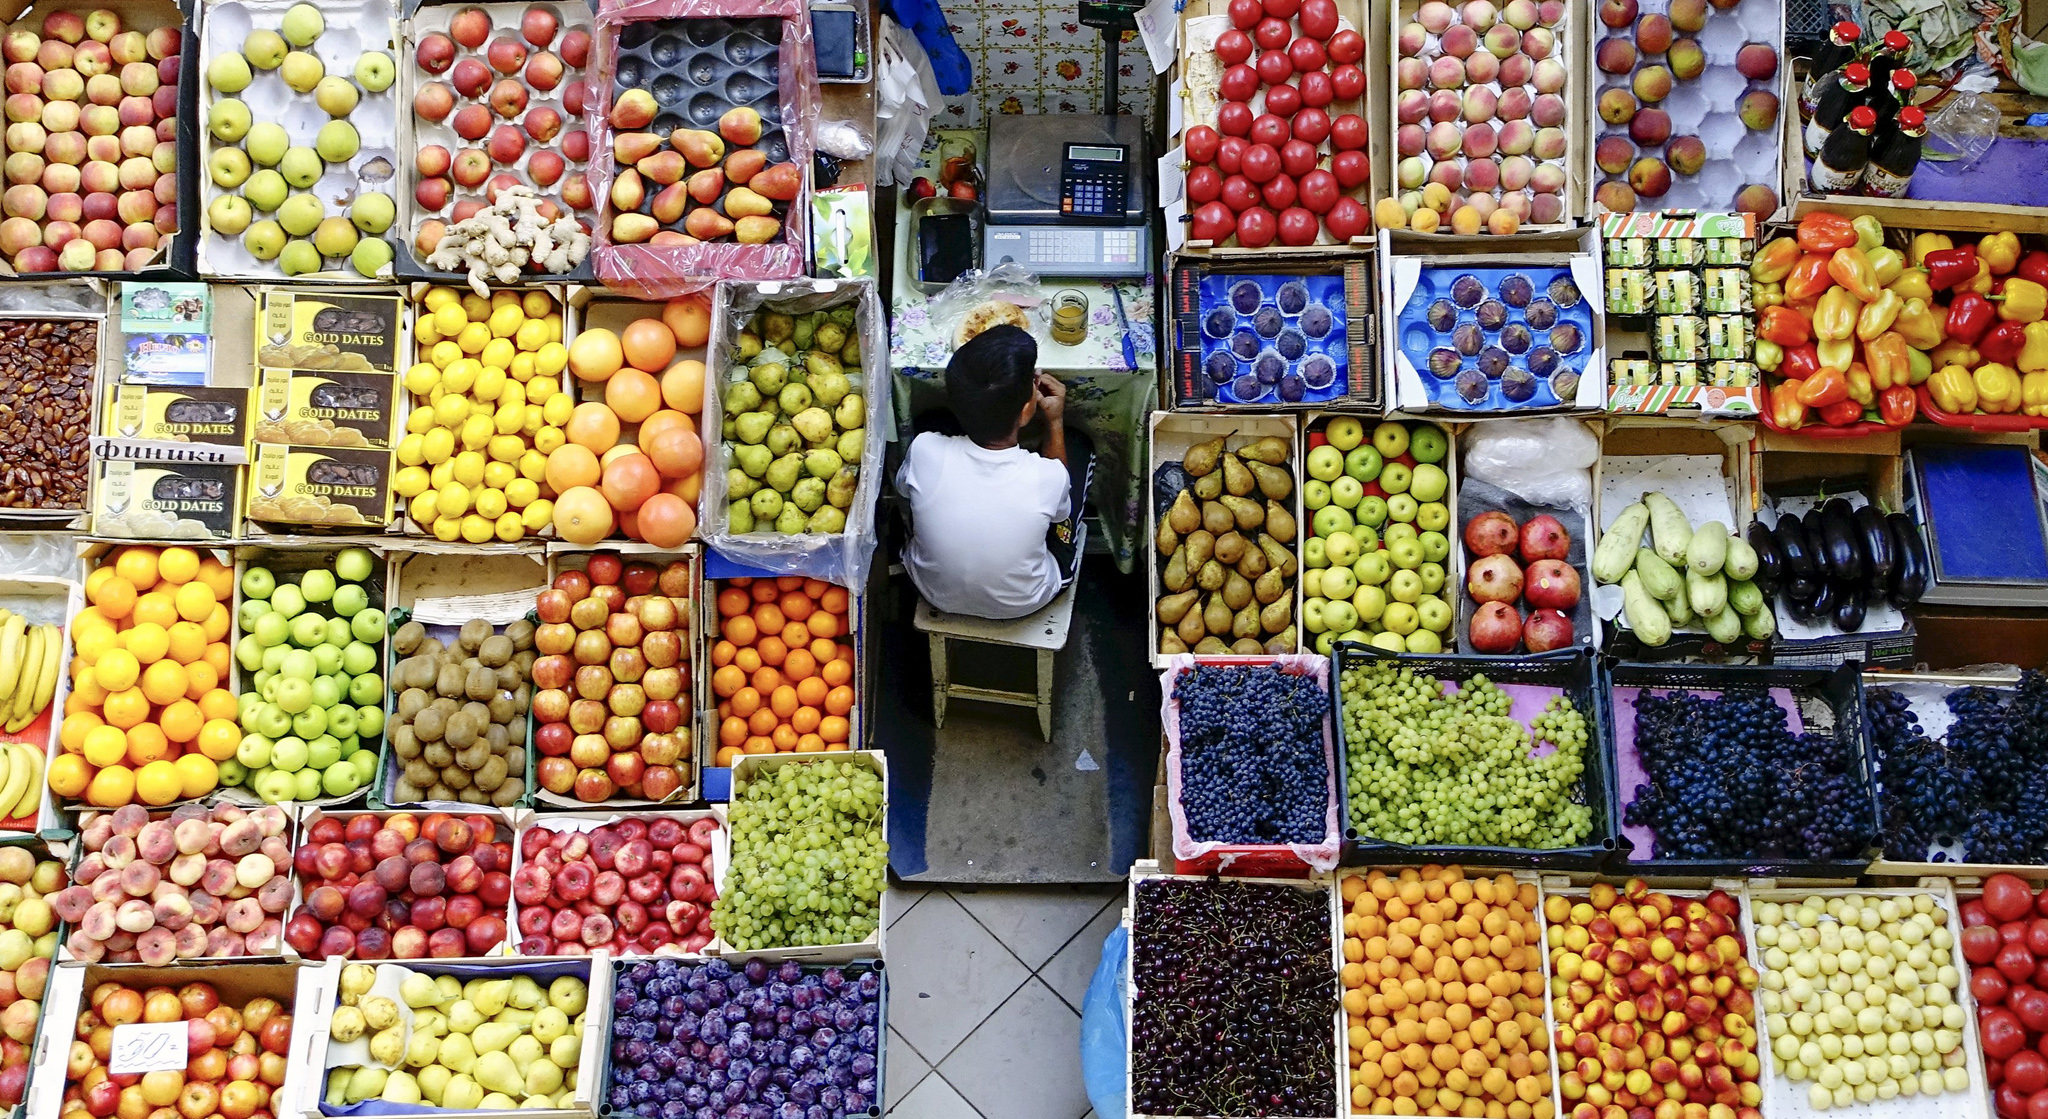 A boy takes a meal break at a fruit stall in the central market in Kazan, Russia.